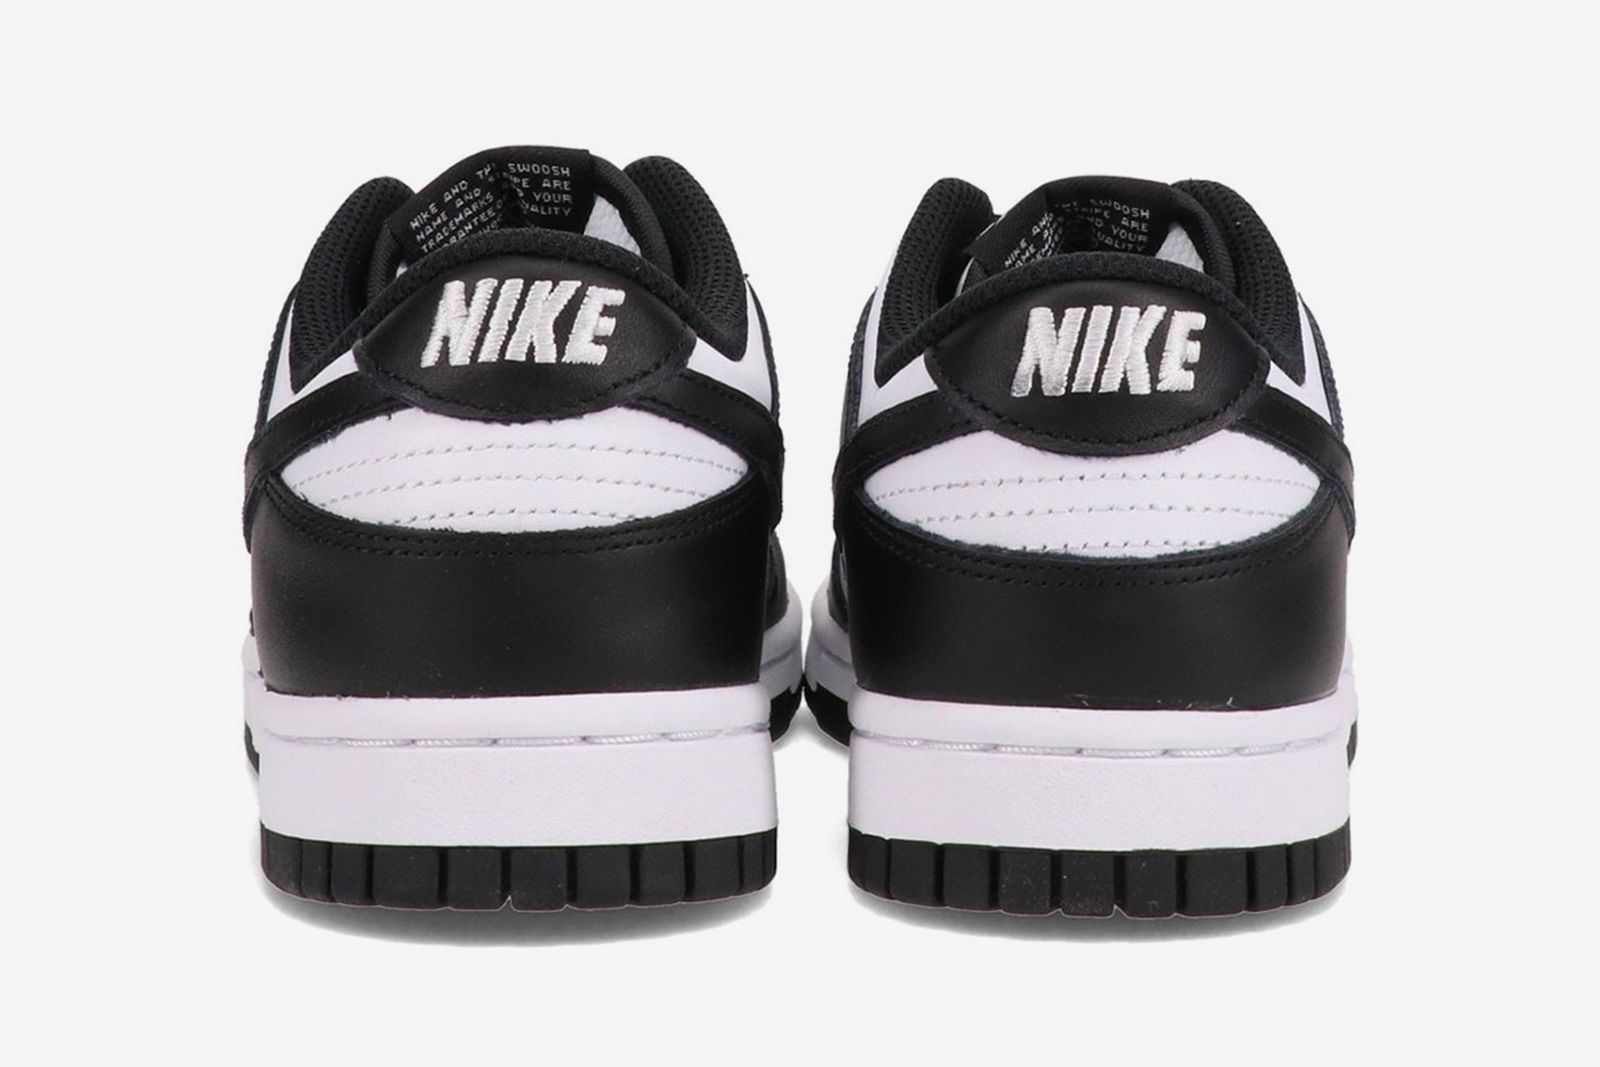 nike-dunks-january-2021-release-date-price-14